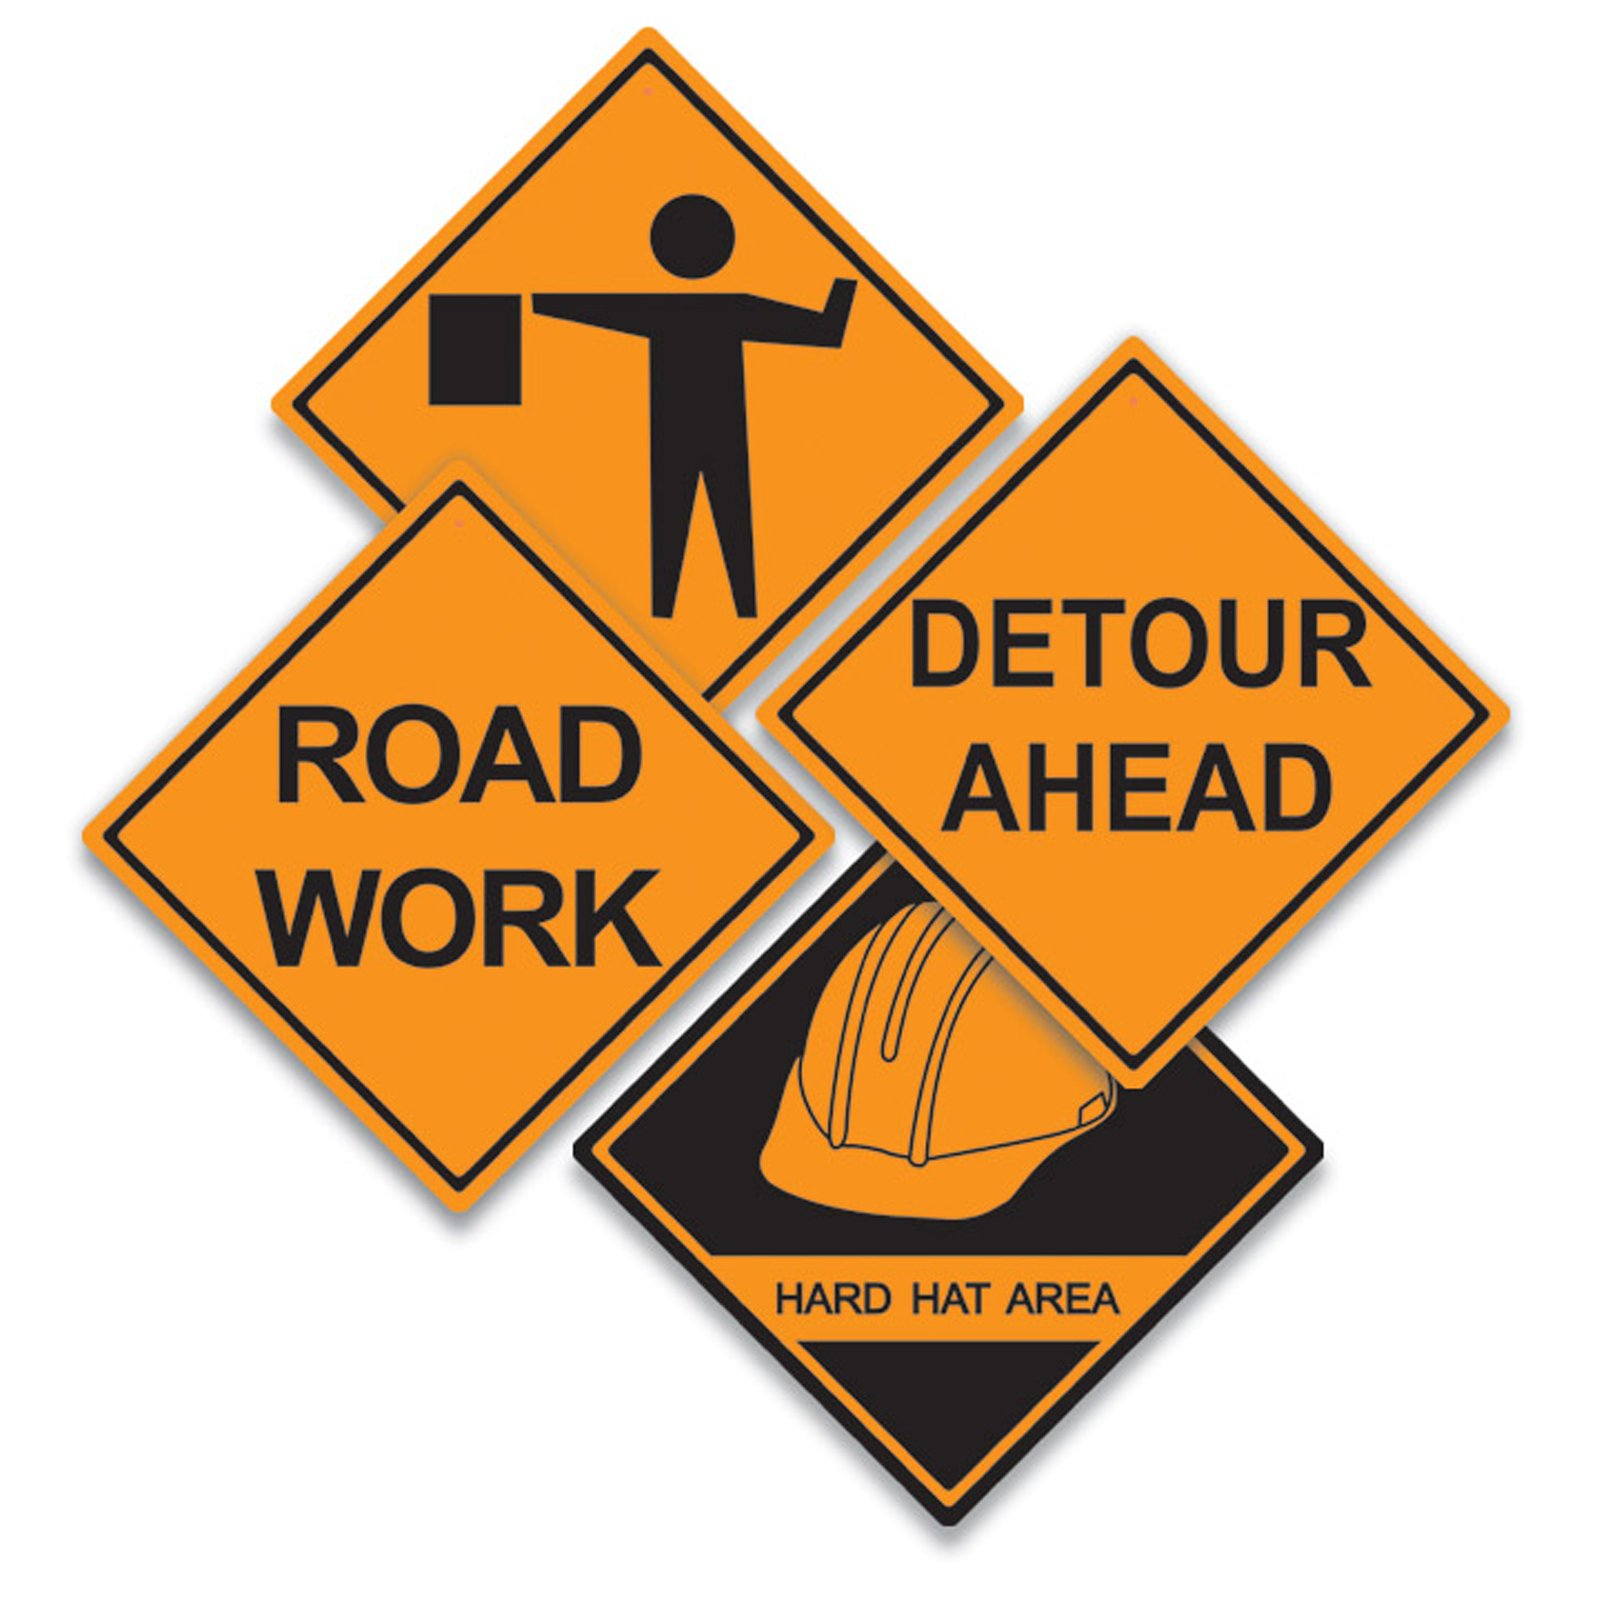 July 2019 GDOT Year-Long Detours Begin Along SR 25/Main Street